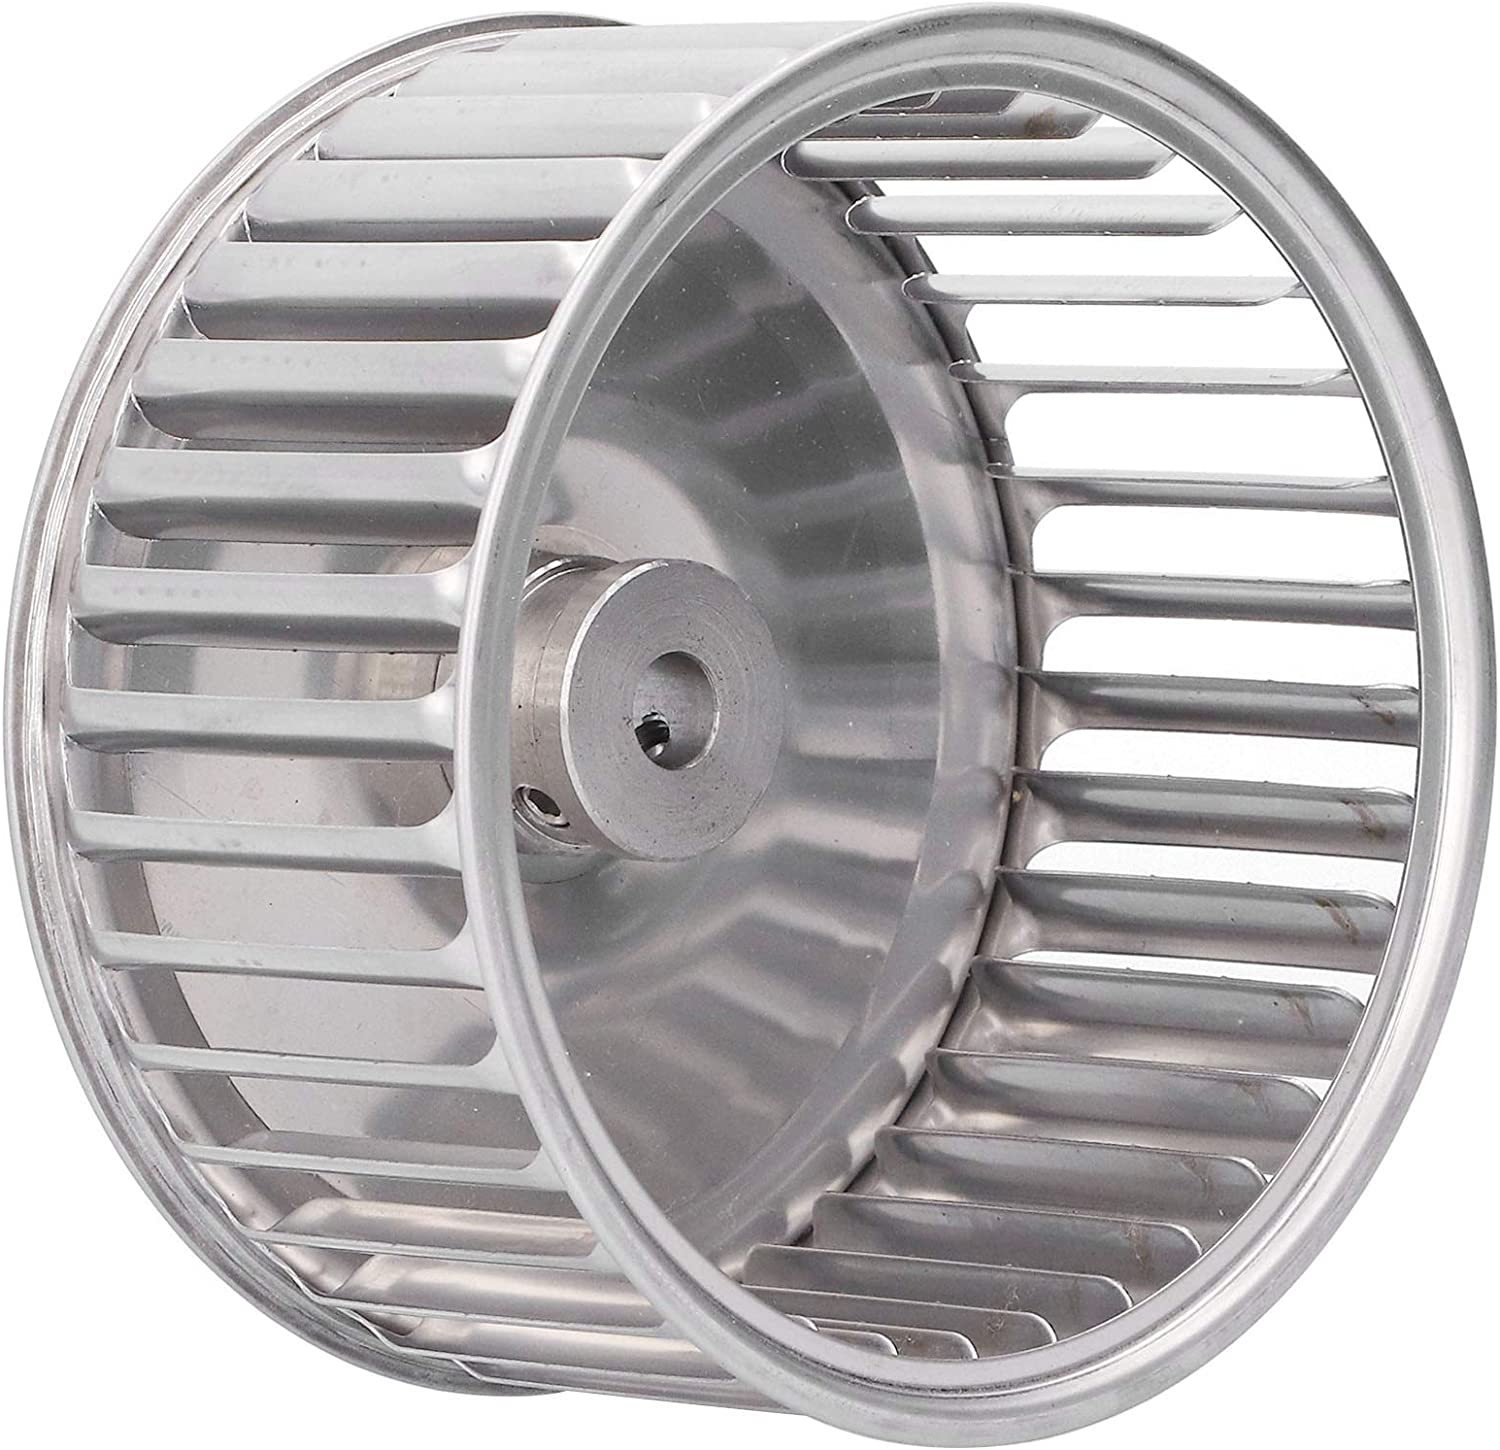 New products, world's highest quality popular! Sale item Multi‑Wing Centrifugal Wheel Blower Sheet Galvanized Motor